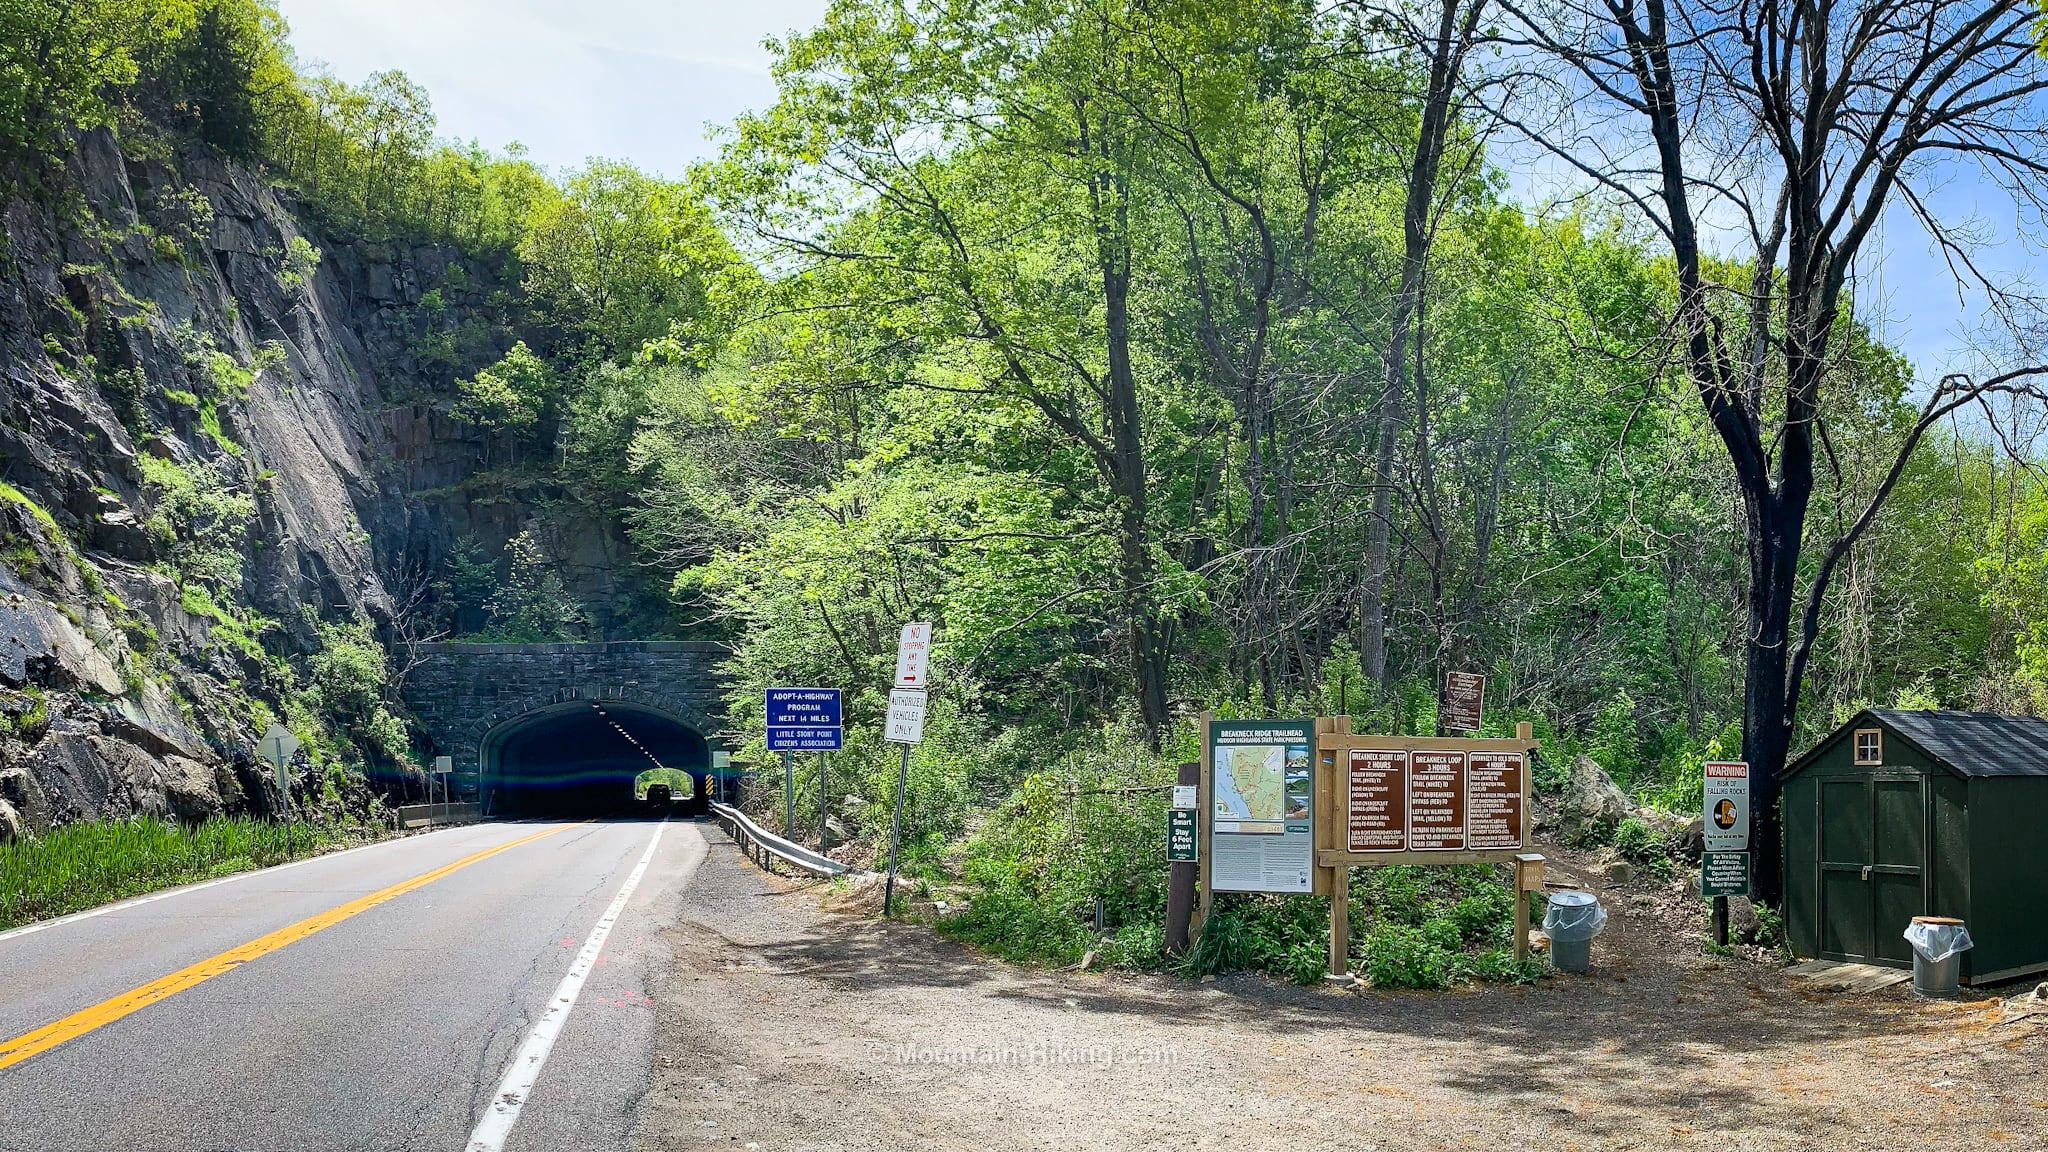 Breakneck Ridge trailhead next to road and tunnel